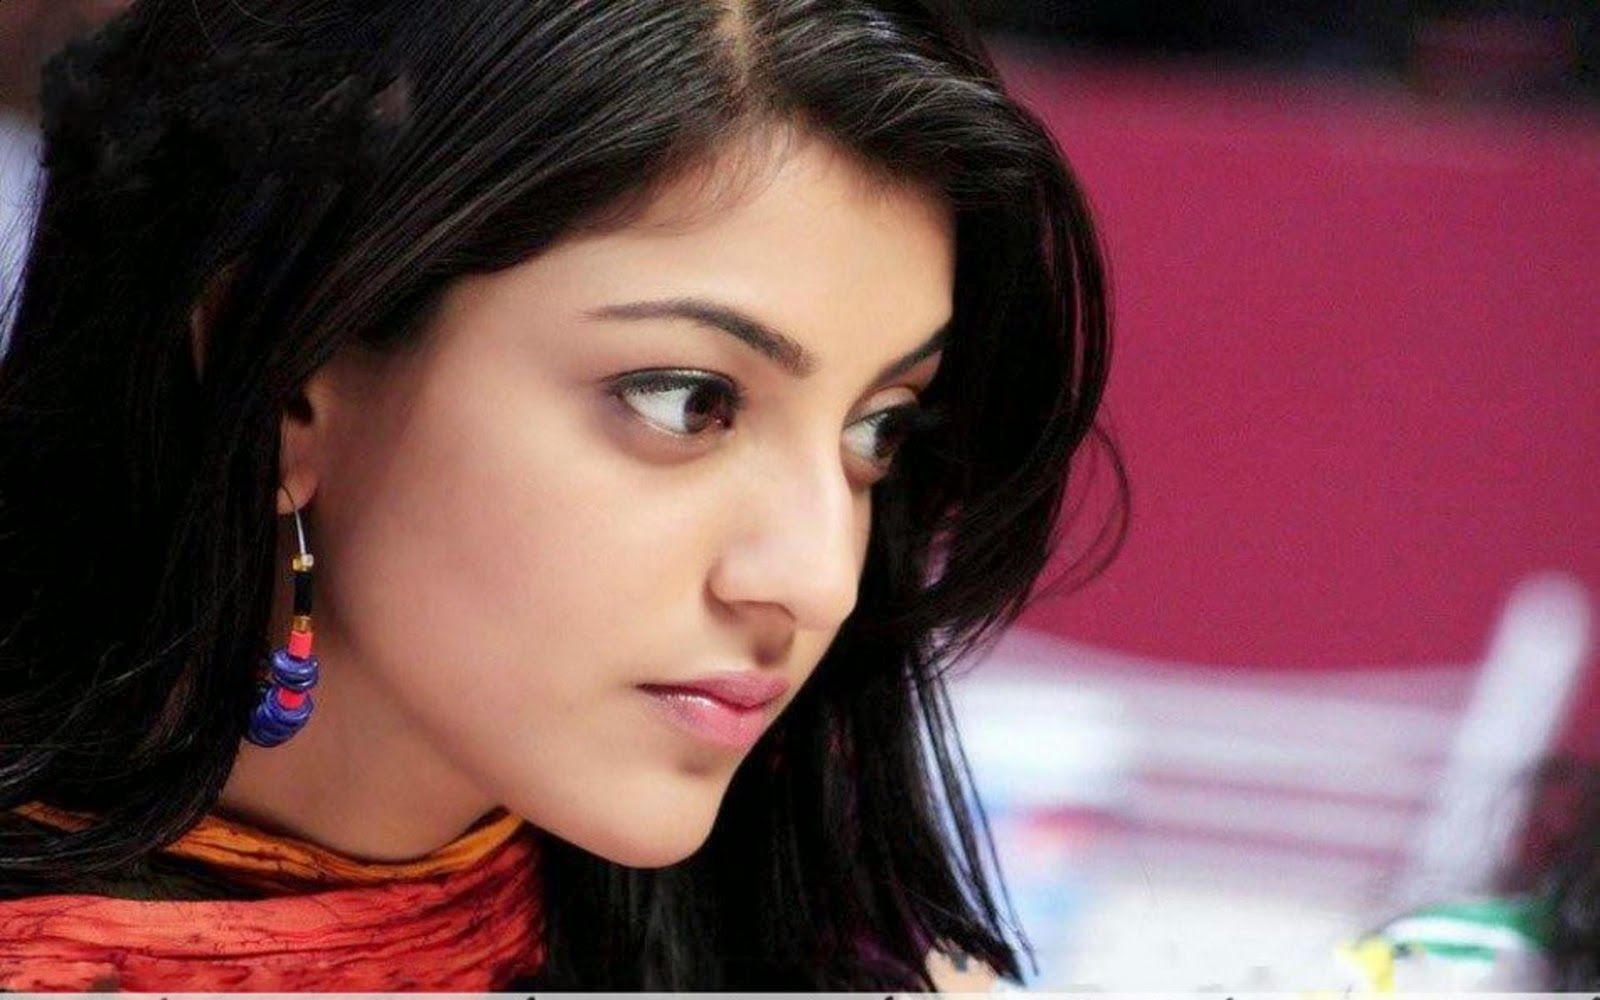 1600 x 1000 jpeg 161kB, Kajal agarwal hot hd wallpapers 1366x768 - HD ...